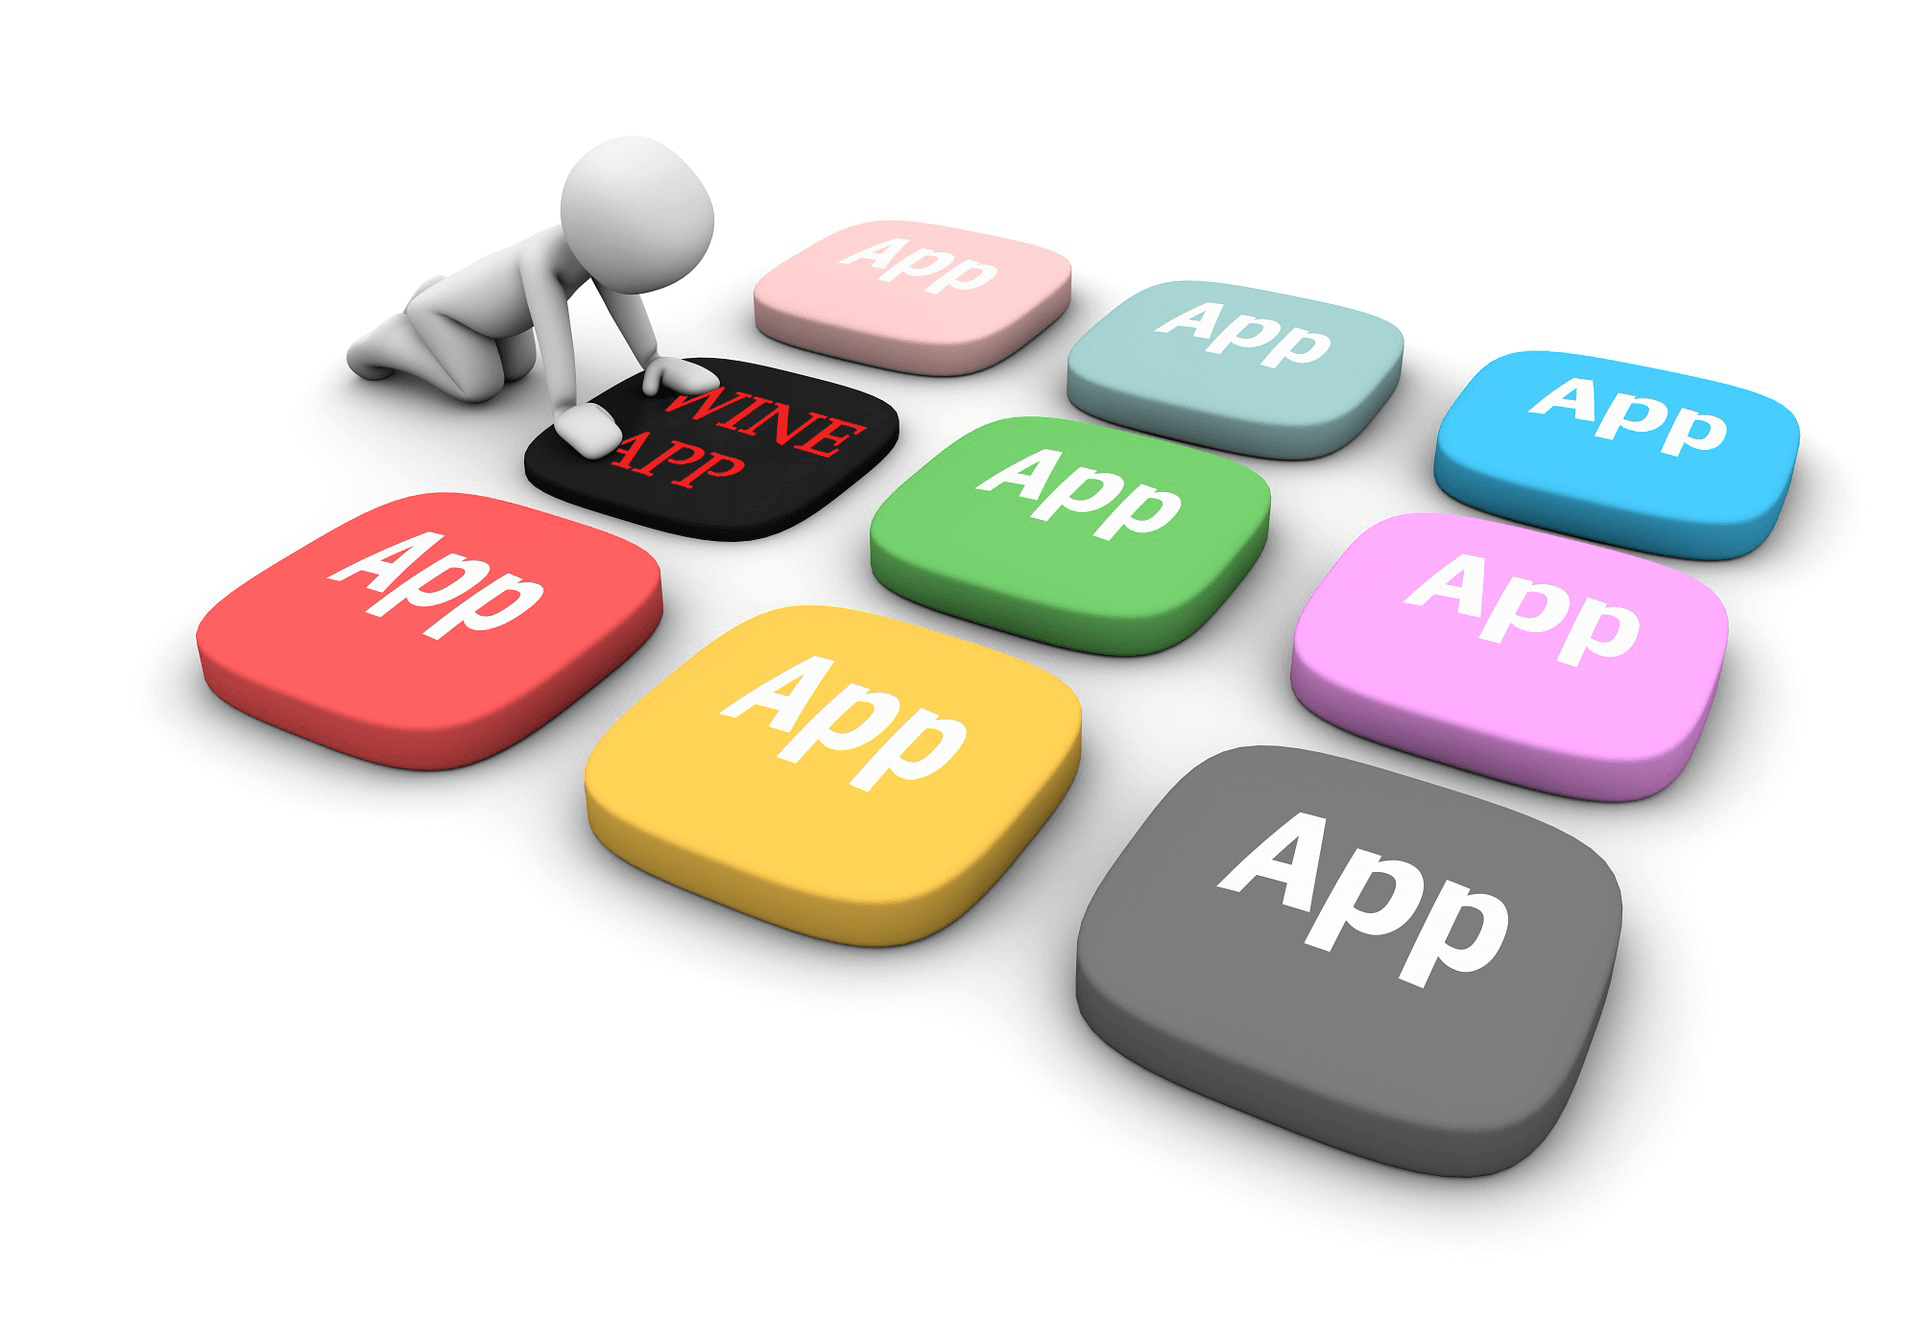 Infographic showing a figure choosing one of several App buttons.